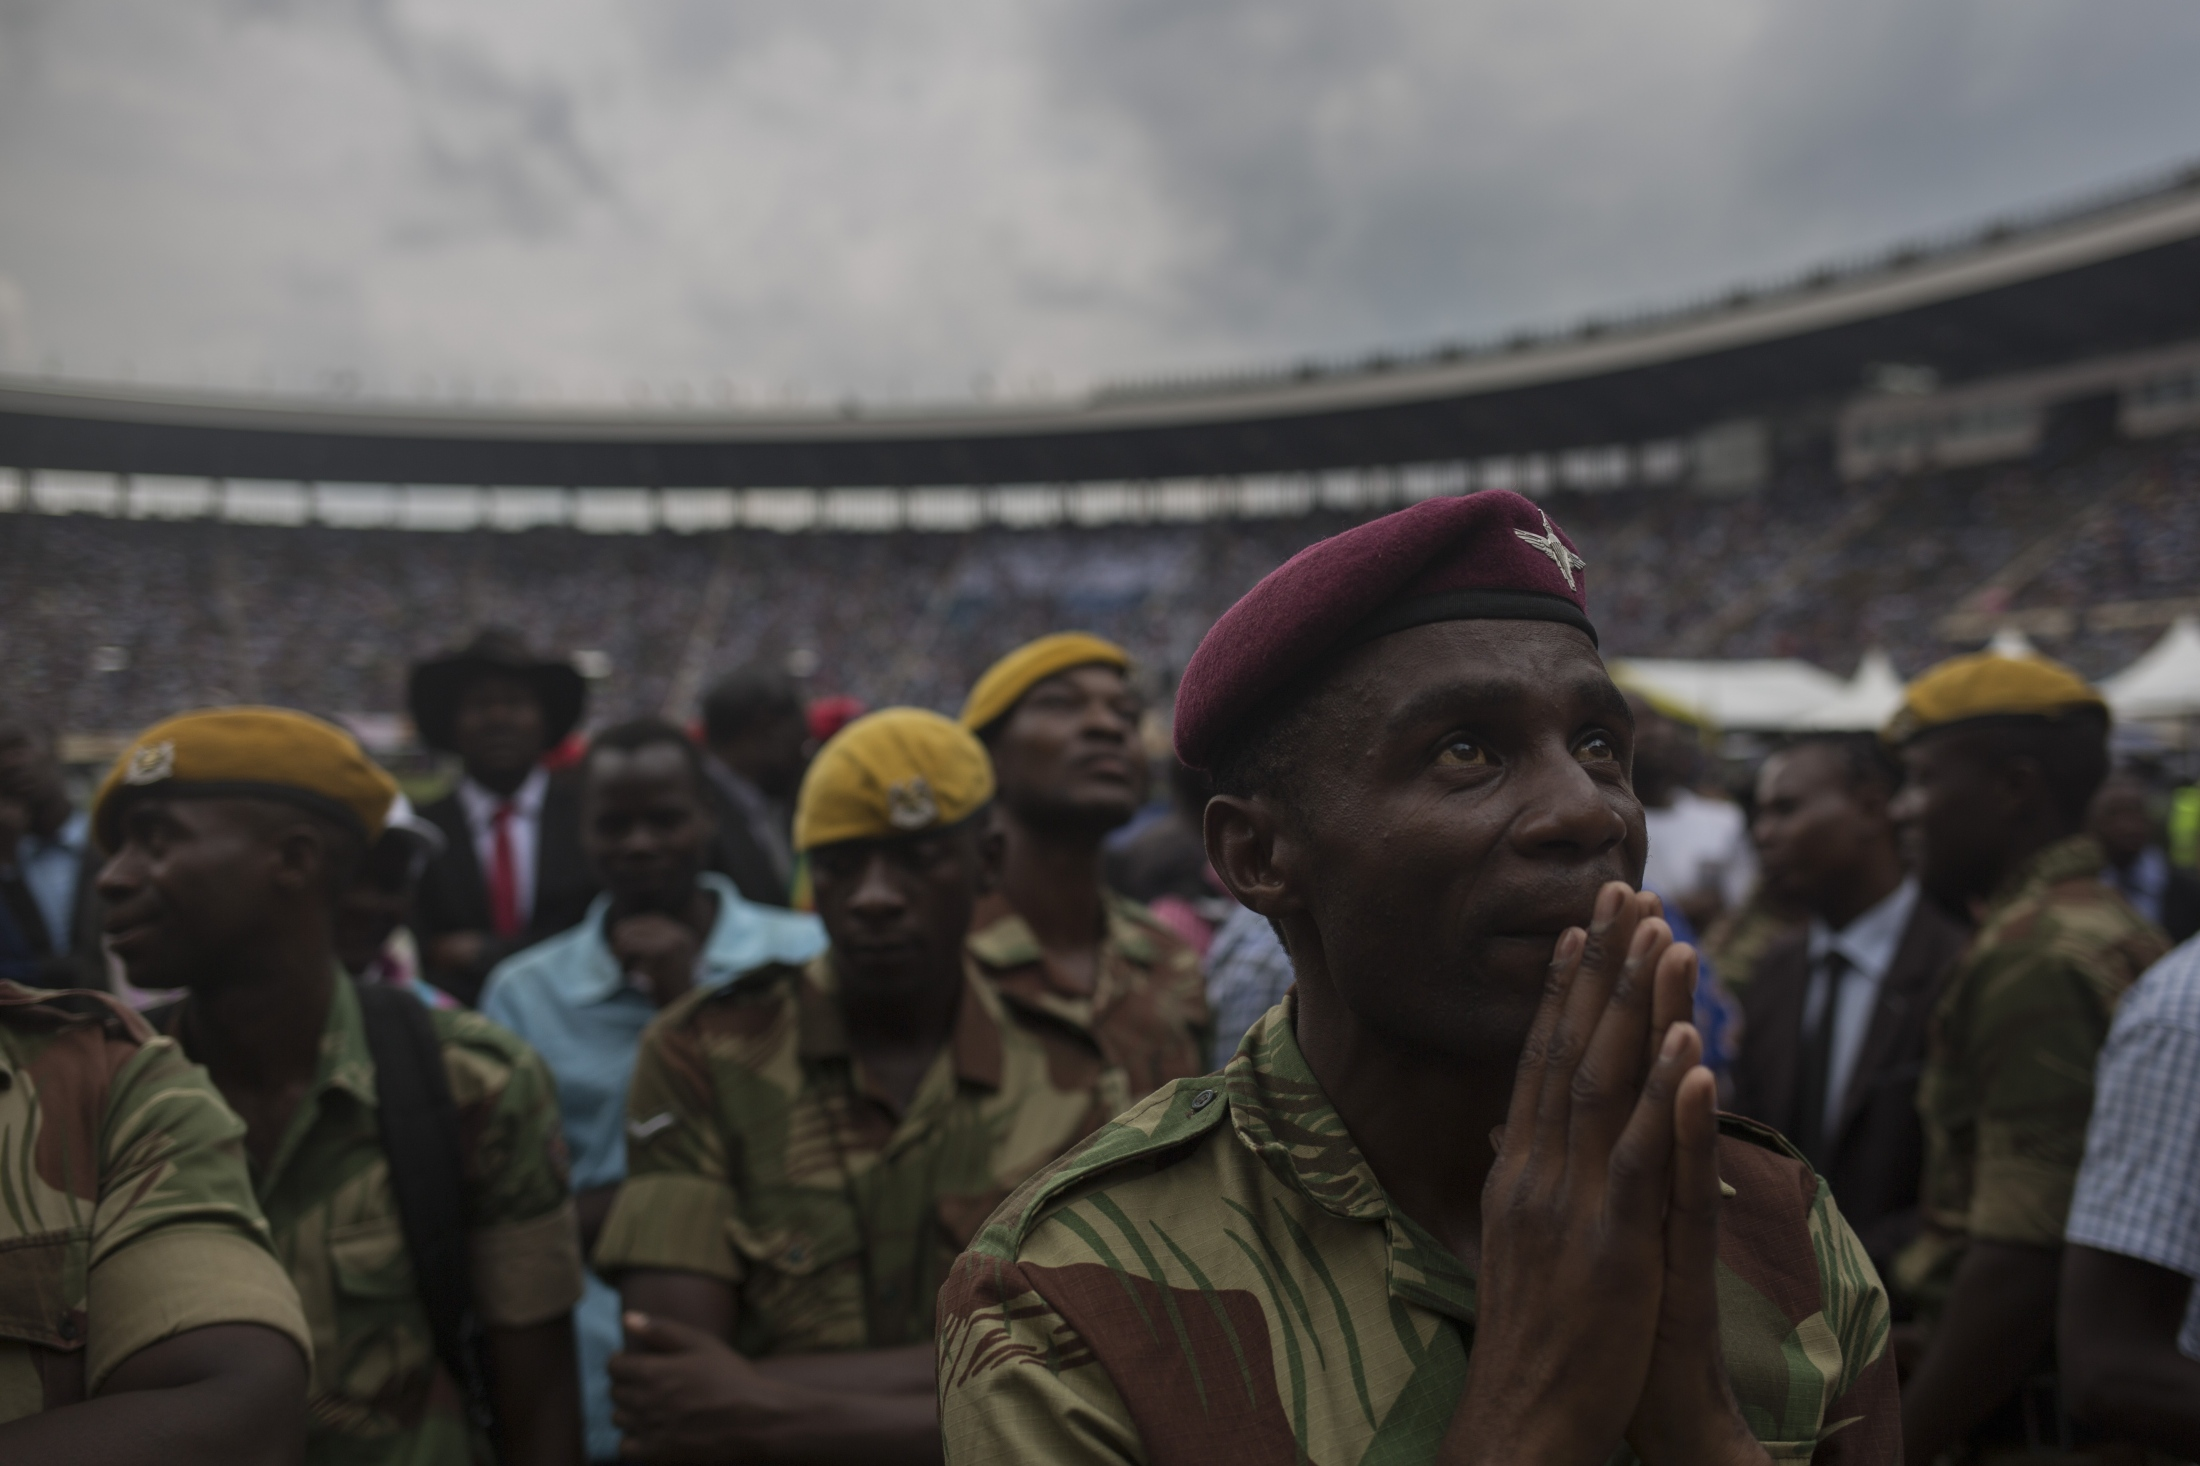 A soldier looks at Zimbabwe's President Emmerson Mnangagwa's speech on a large screen inside the National Sports stadium at the presidential inauguration ceremony in the capital Harare, Zimbabwe Friday, Nov. 24, 2017. Mnangagwa was sworn in as Zimbabwe's president after Robert Mugabe resigned on Tuesday, ending his 37-year rule.